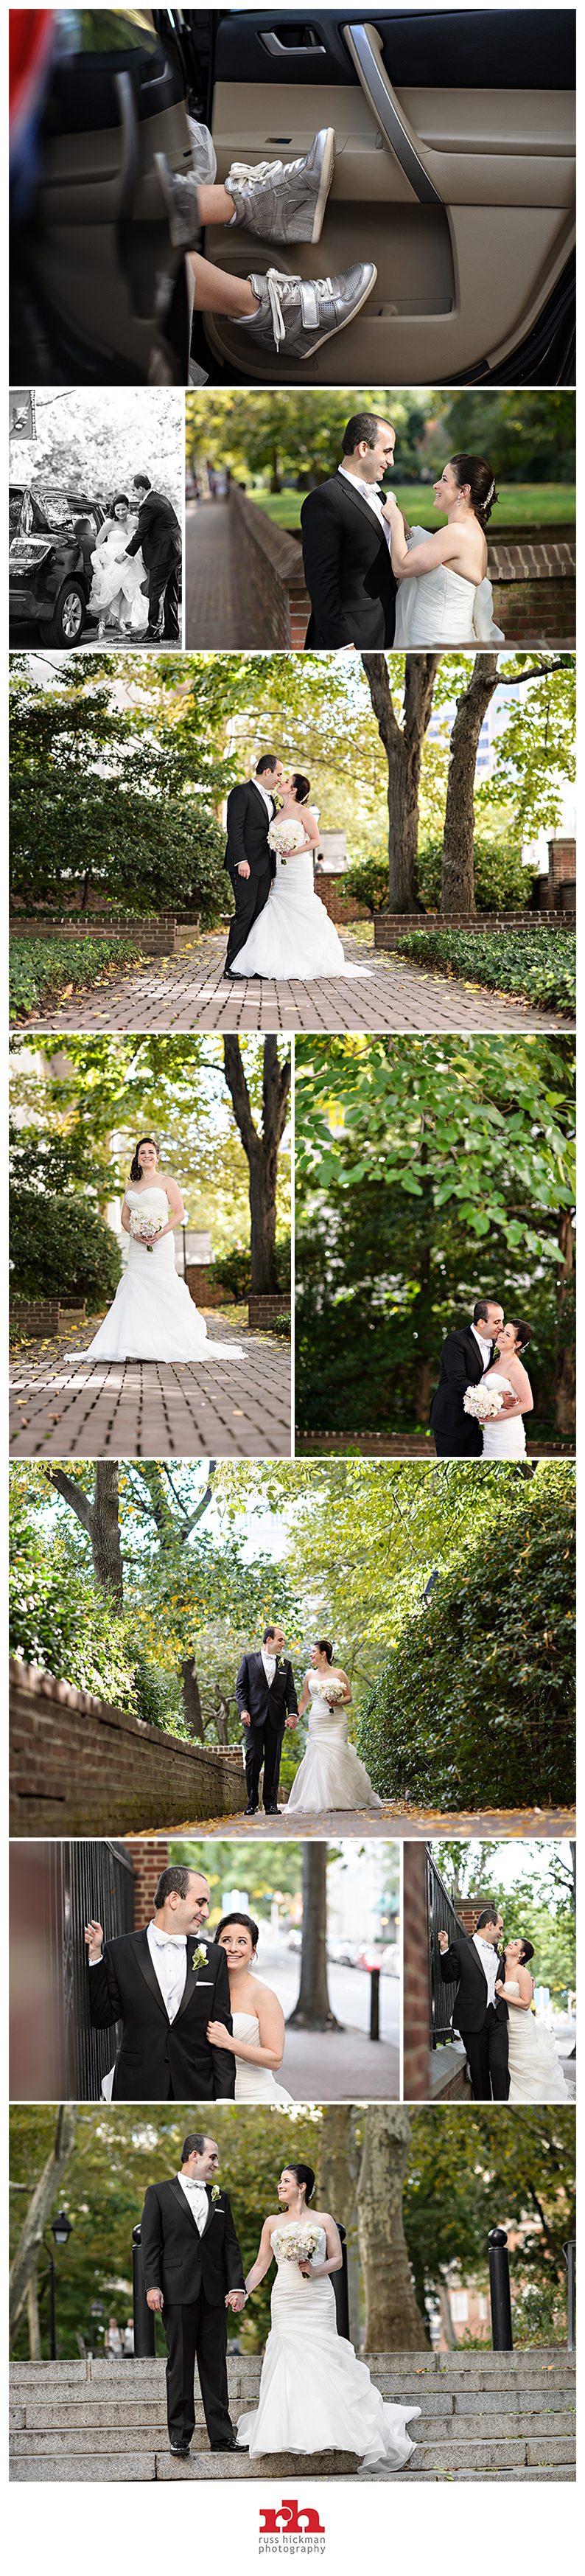 Philadelphia Wedding Photographer JAWBlog007